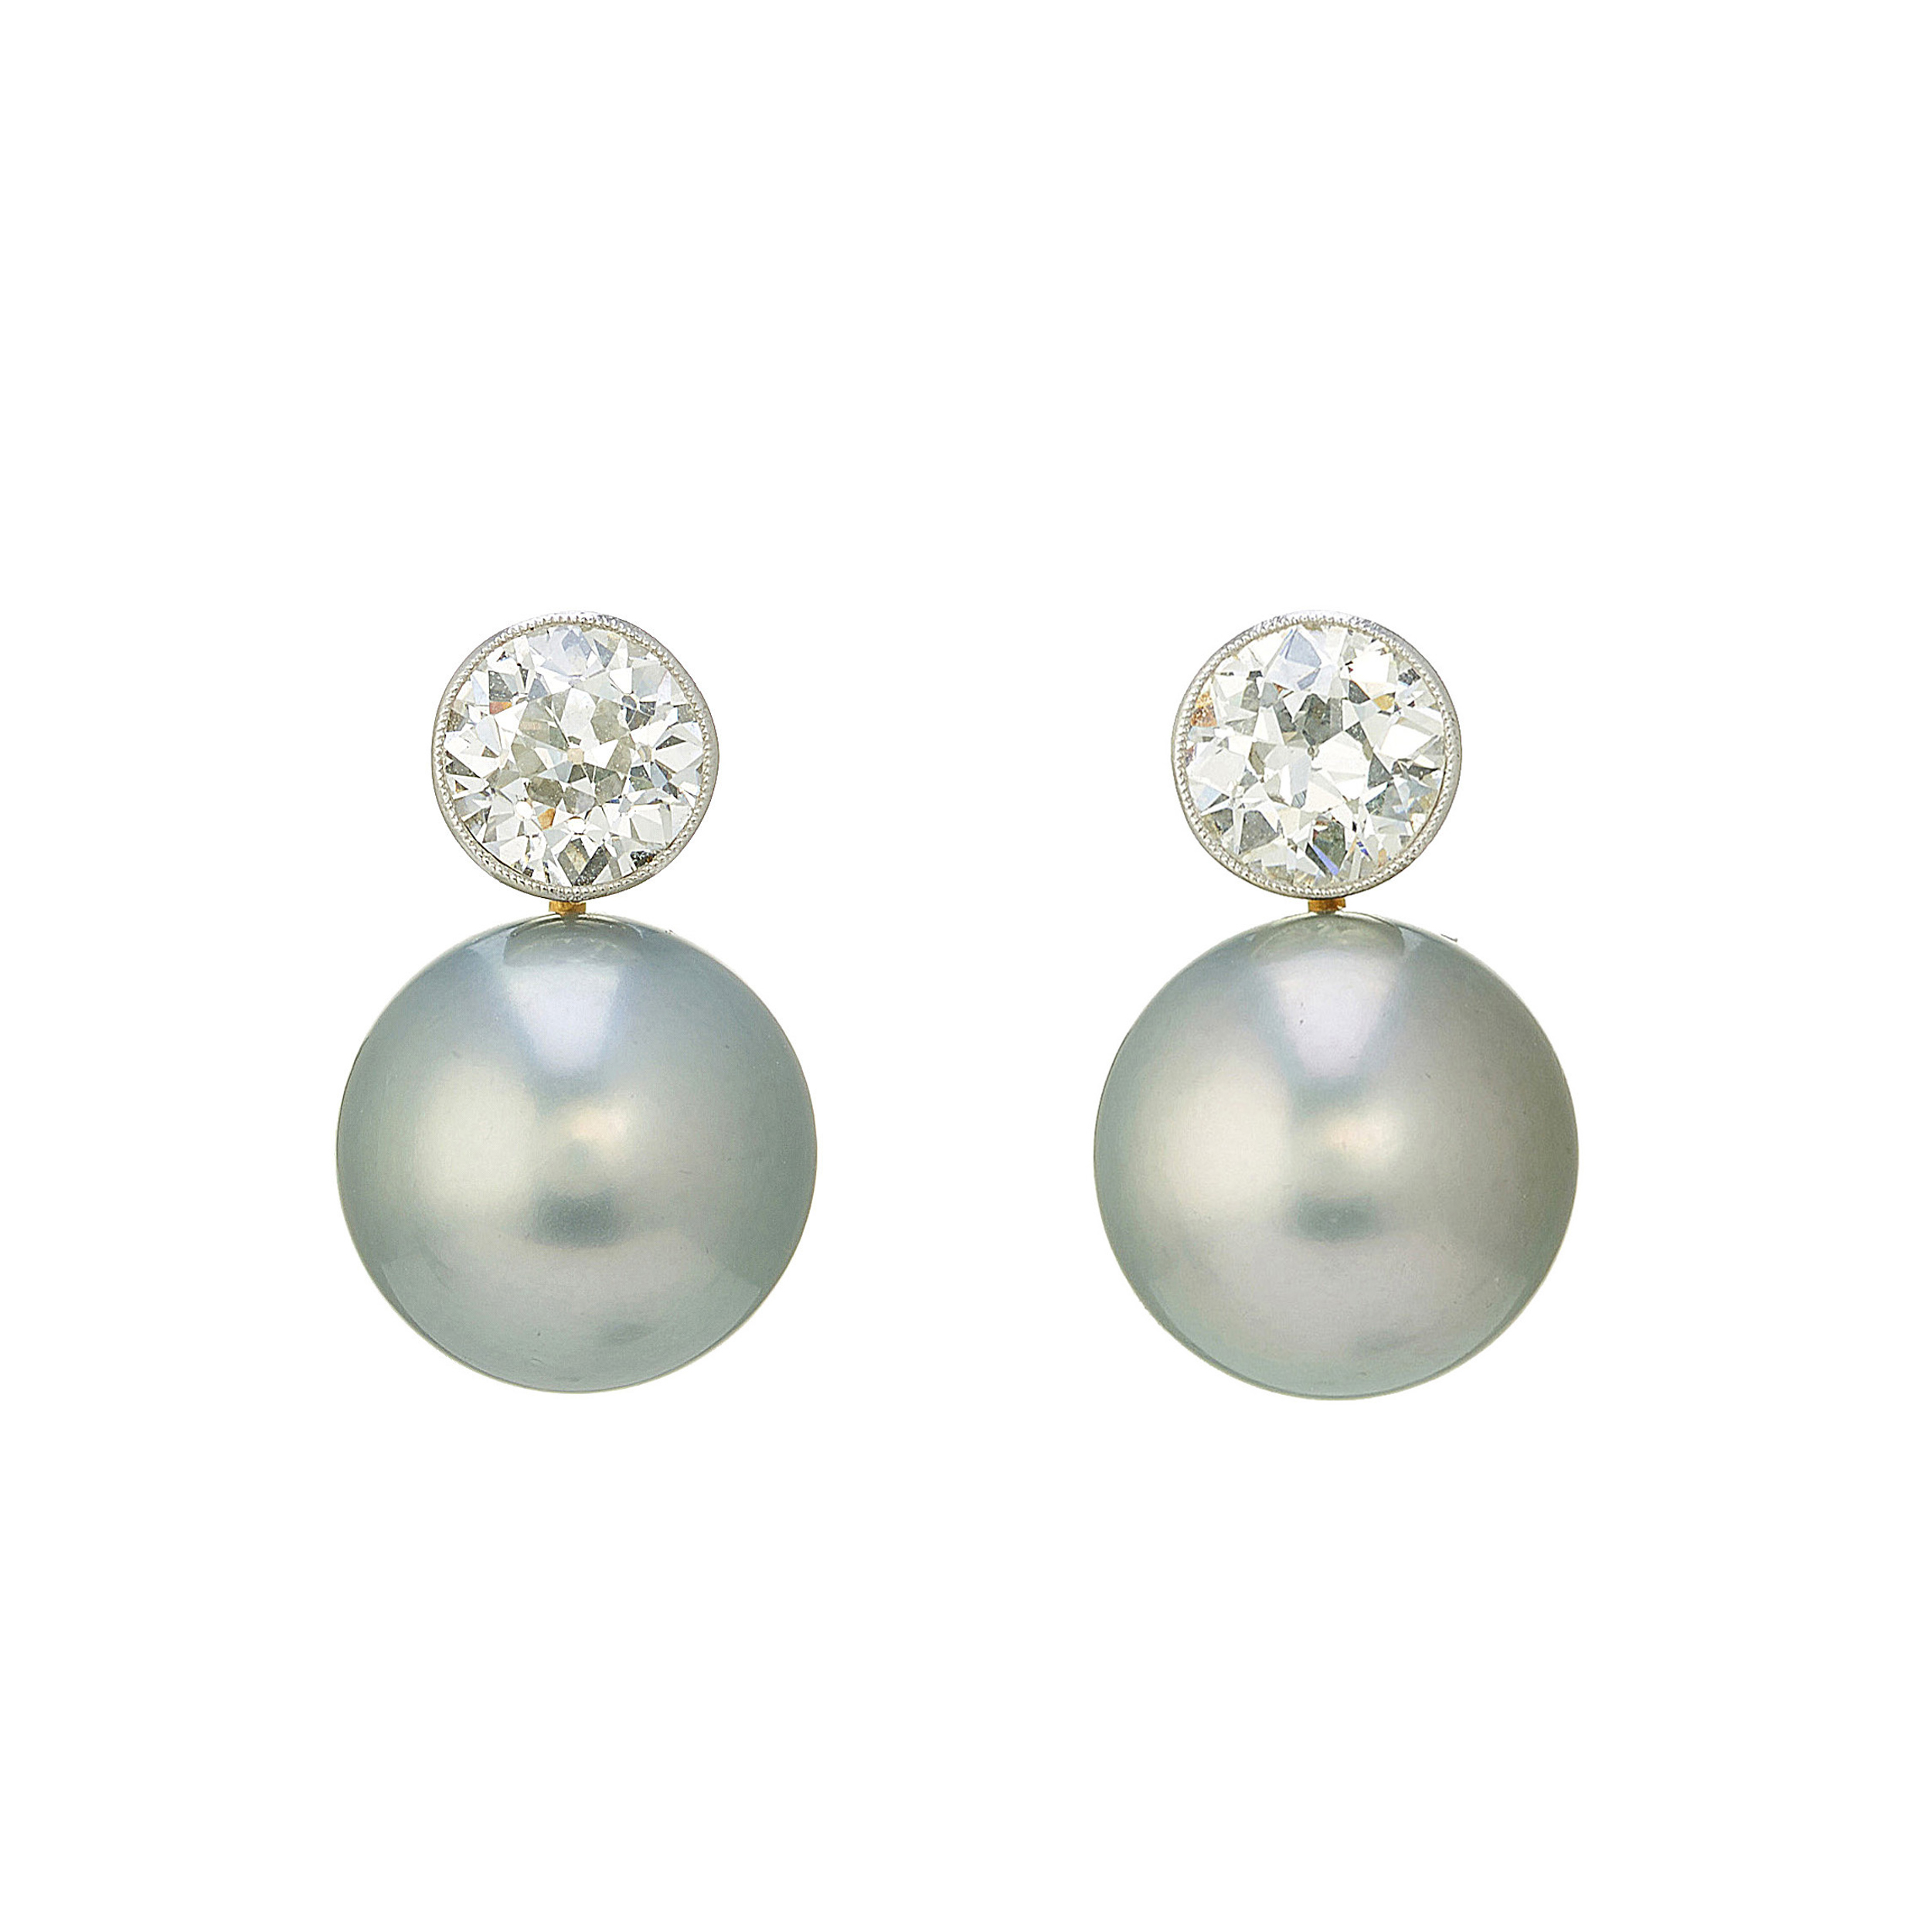 A pair of diamond and South Sea cultured pearl earrings